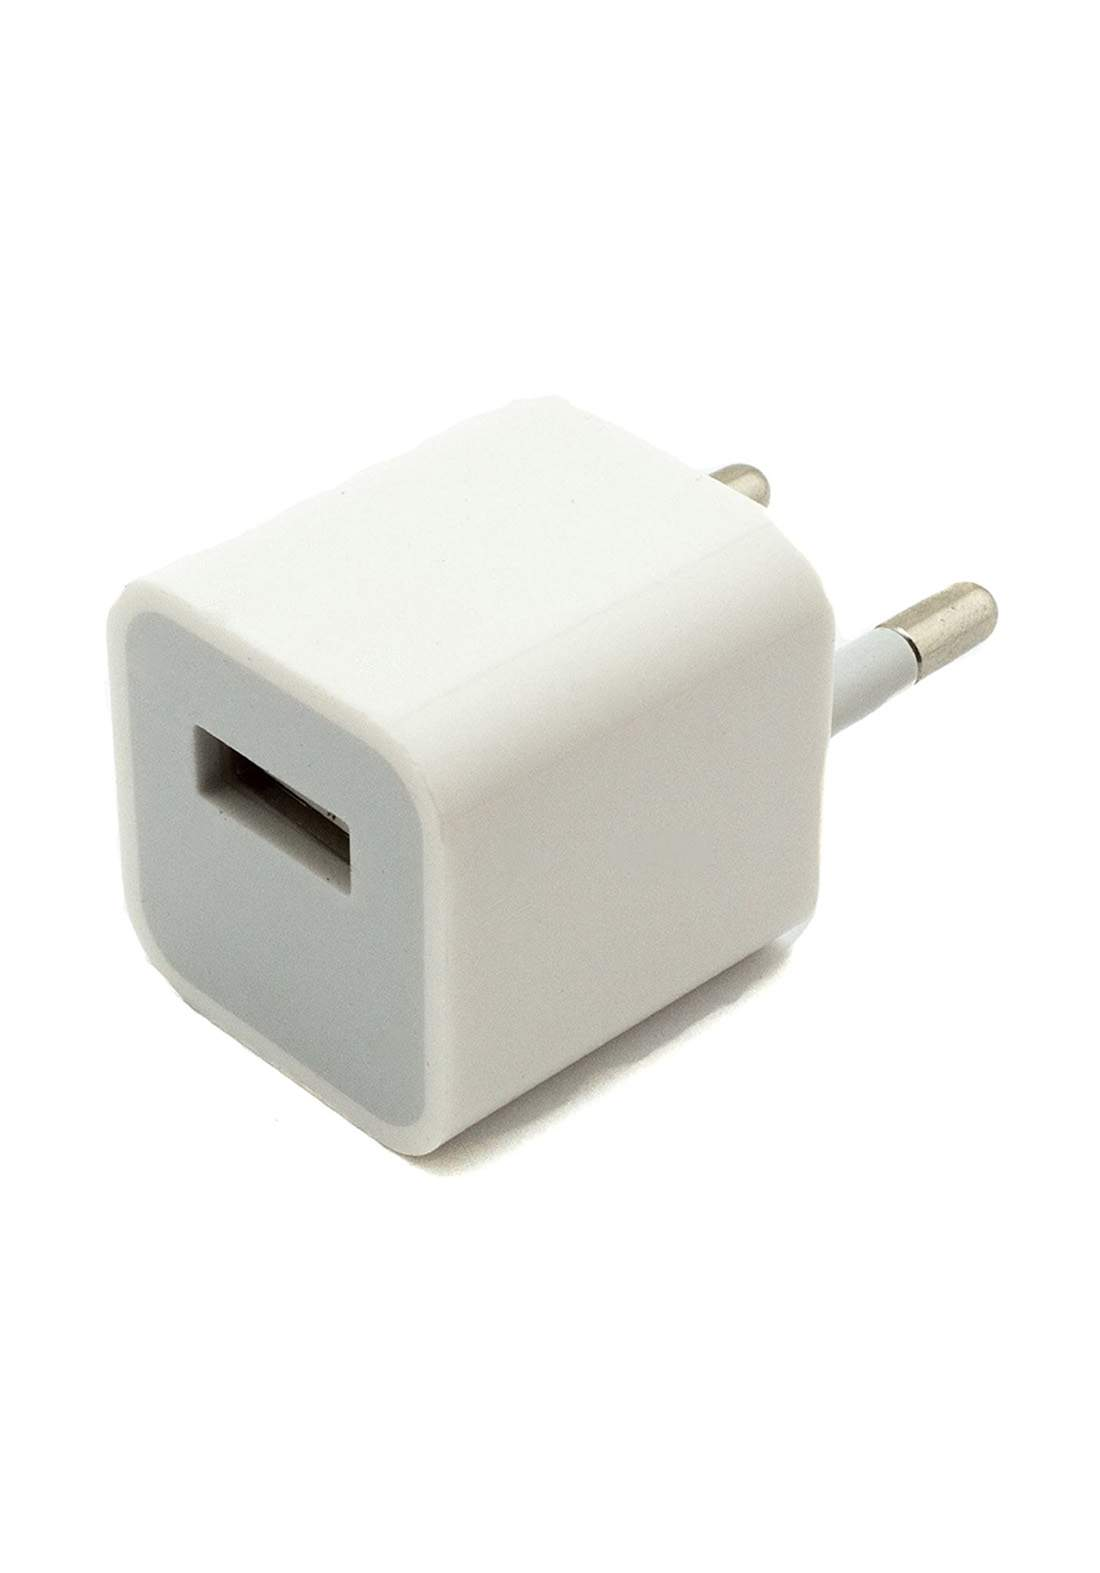 Apple iPhone charger 2 pin Adapter - White  شاحنة